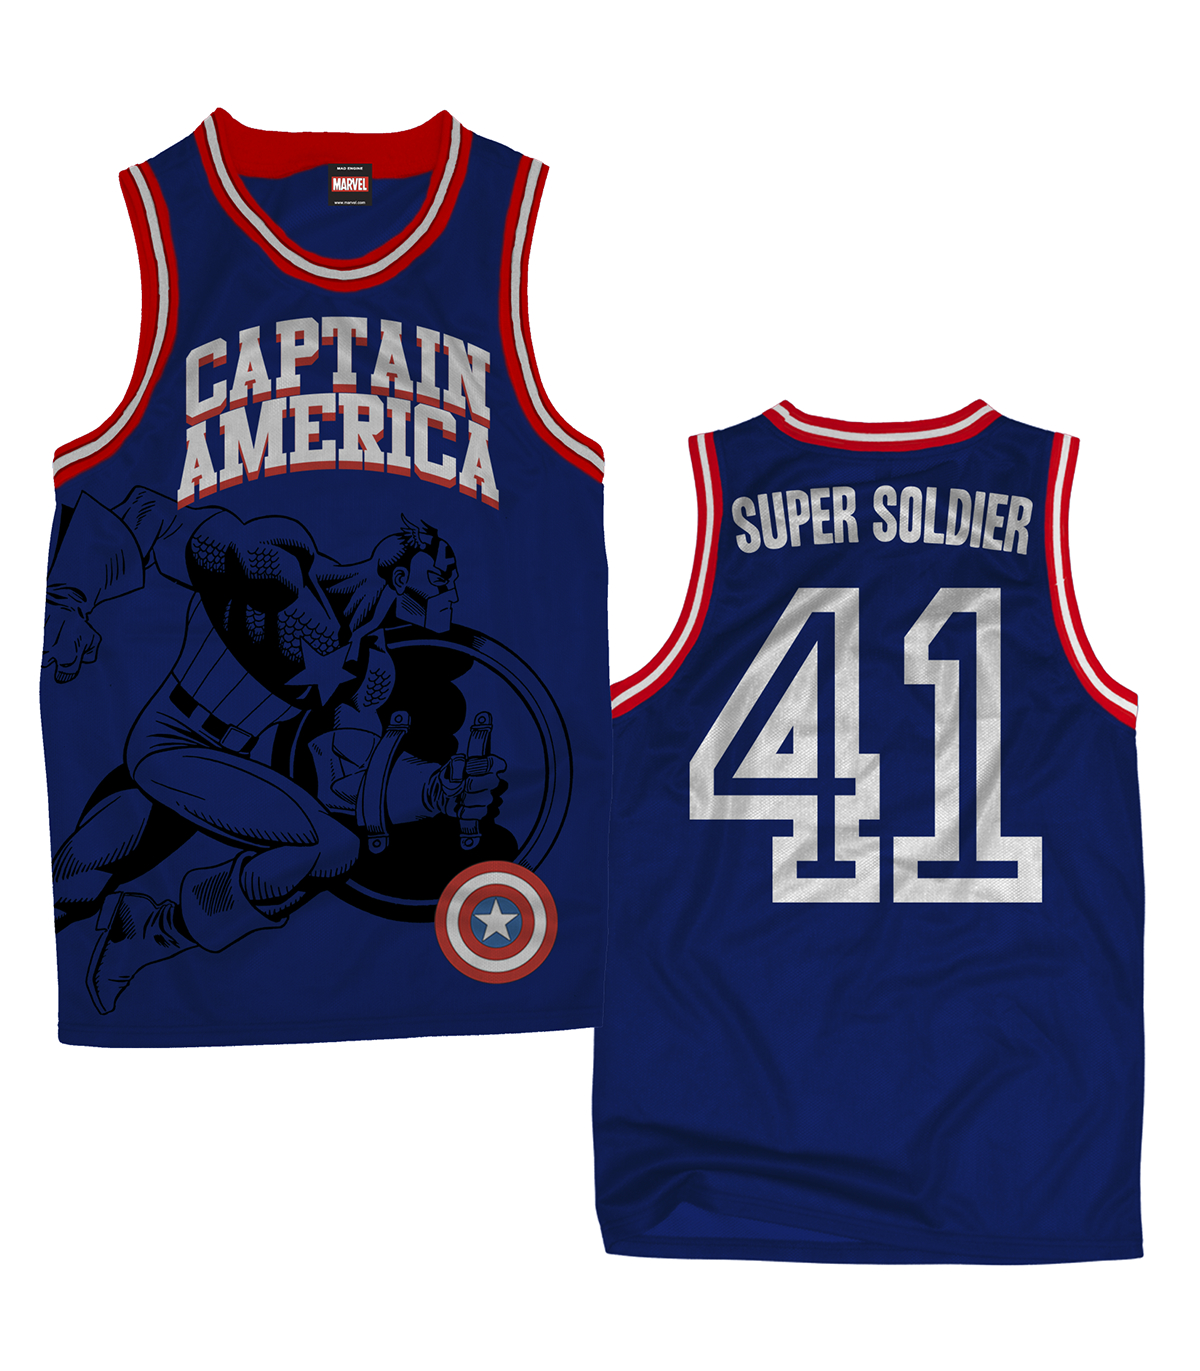 CAPTAIN AMERICA WE ARE #1 BASKETBALL JERSEY SM